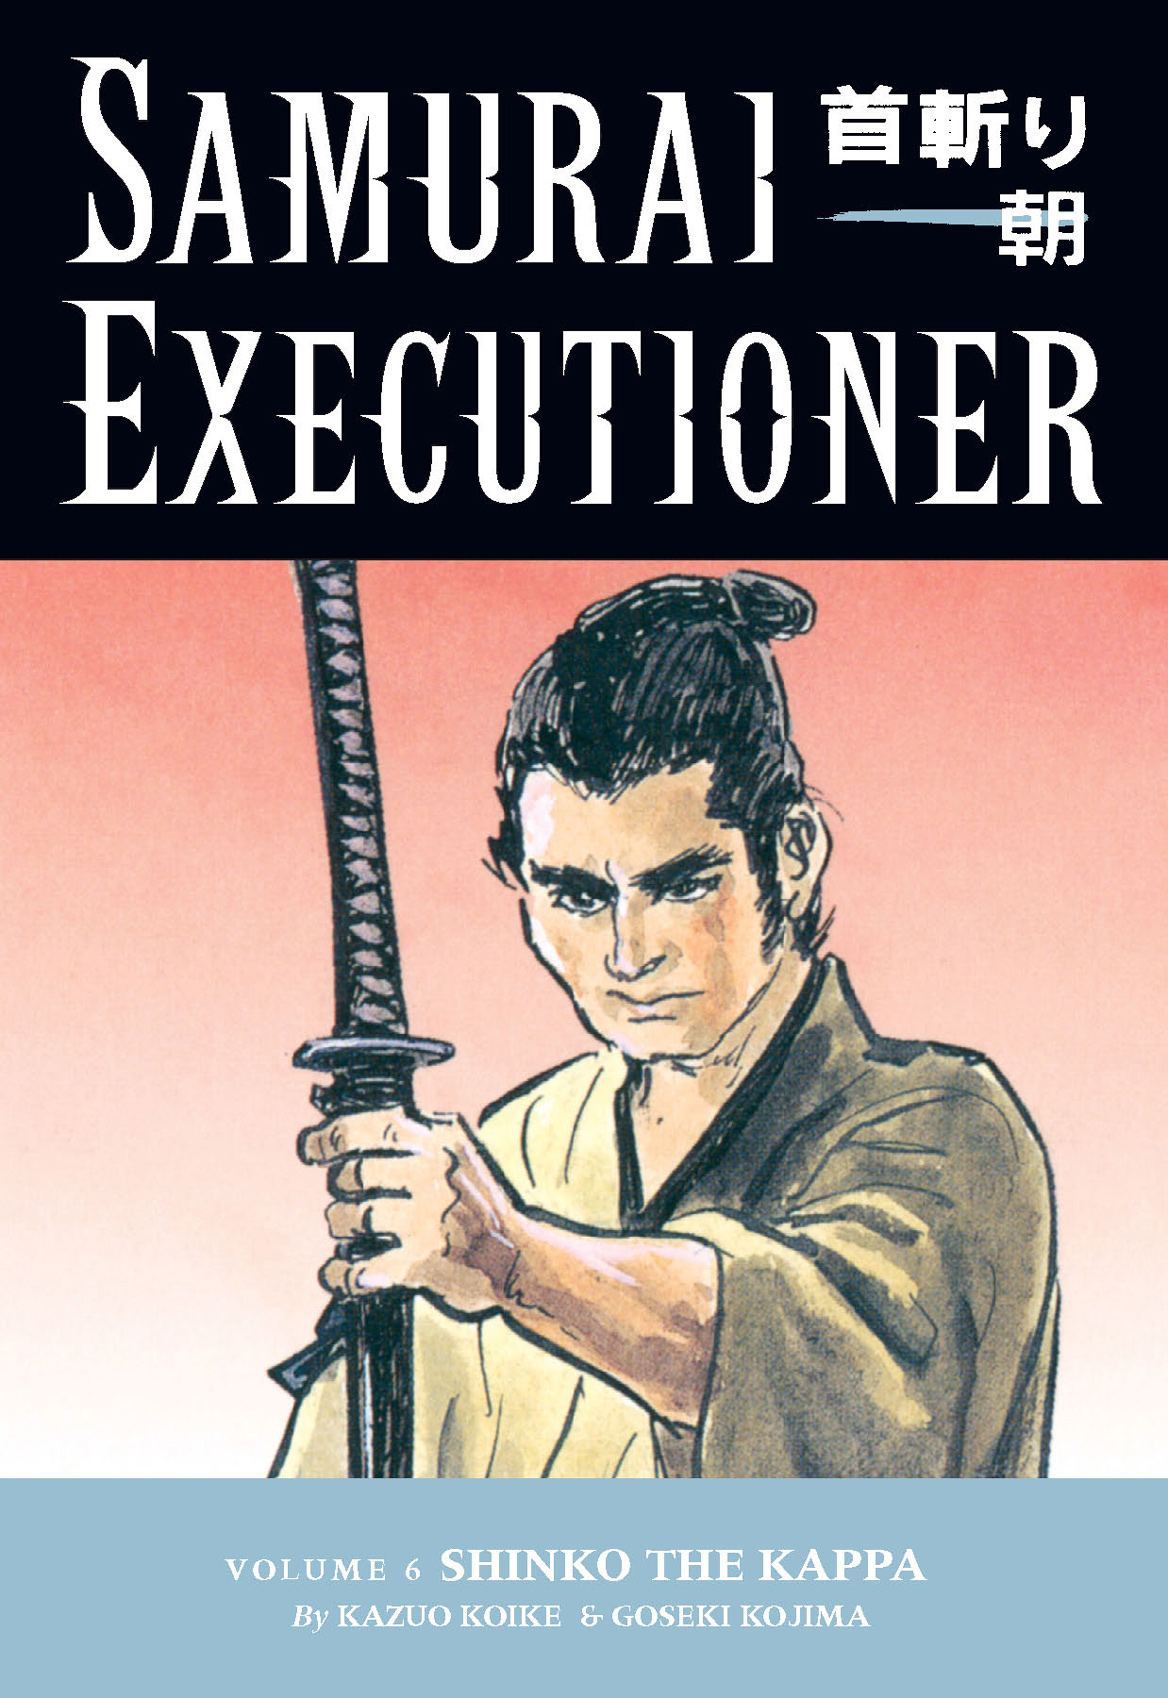 Samurai Executioner Volume 6